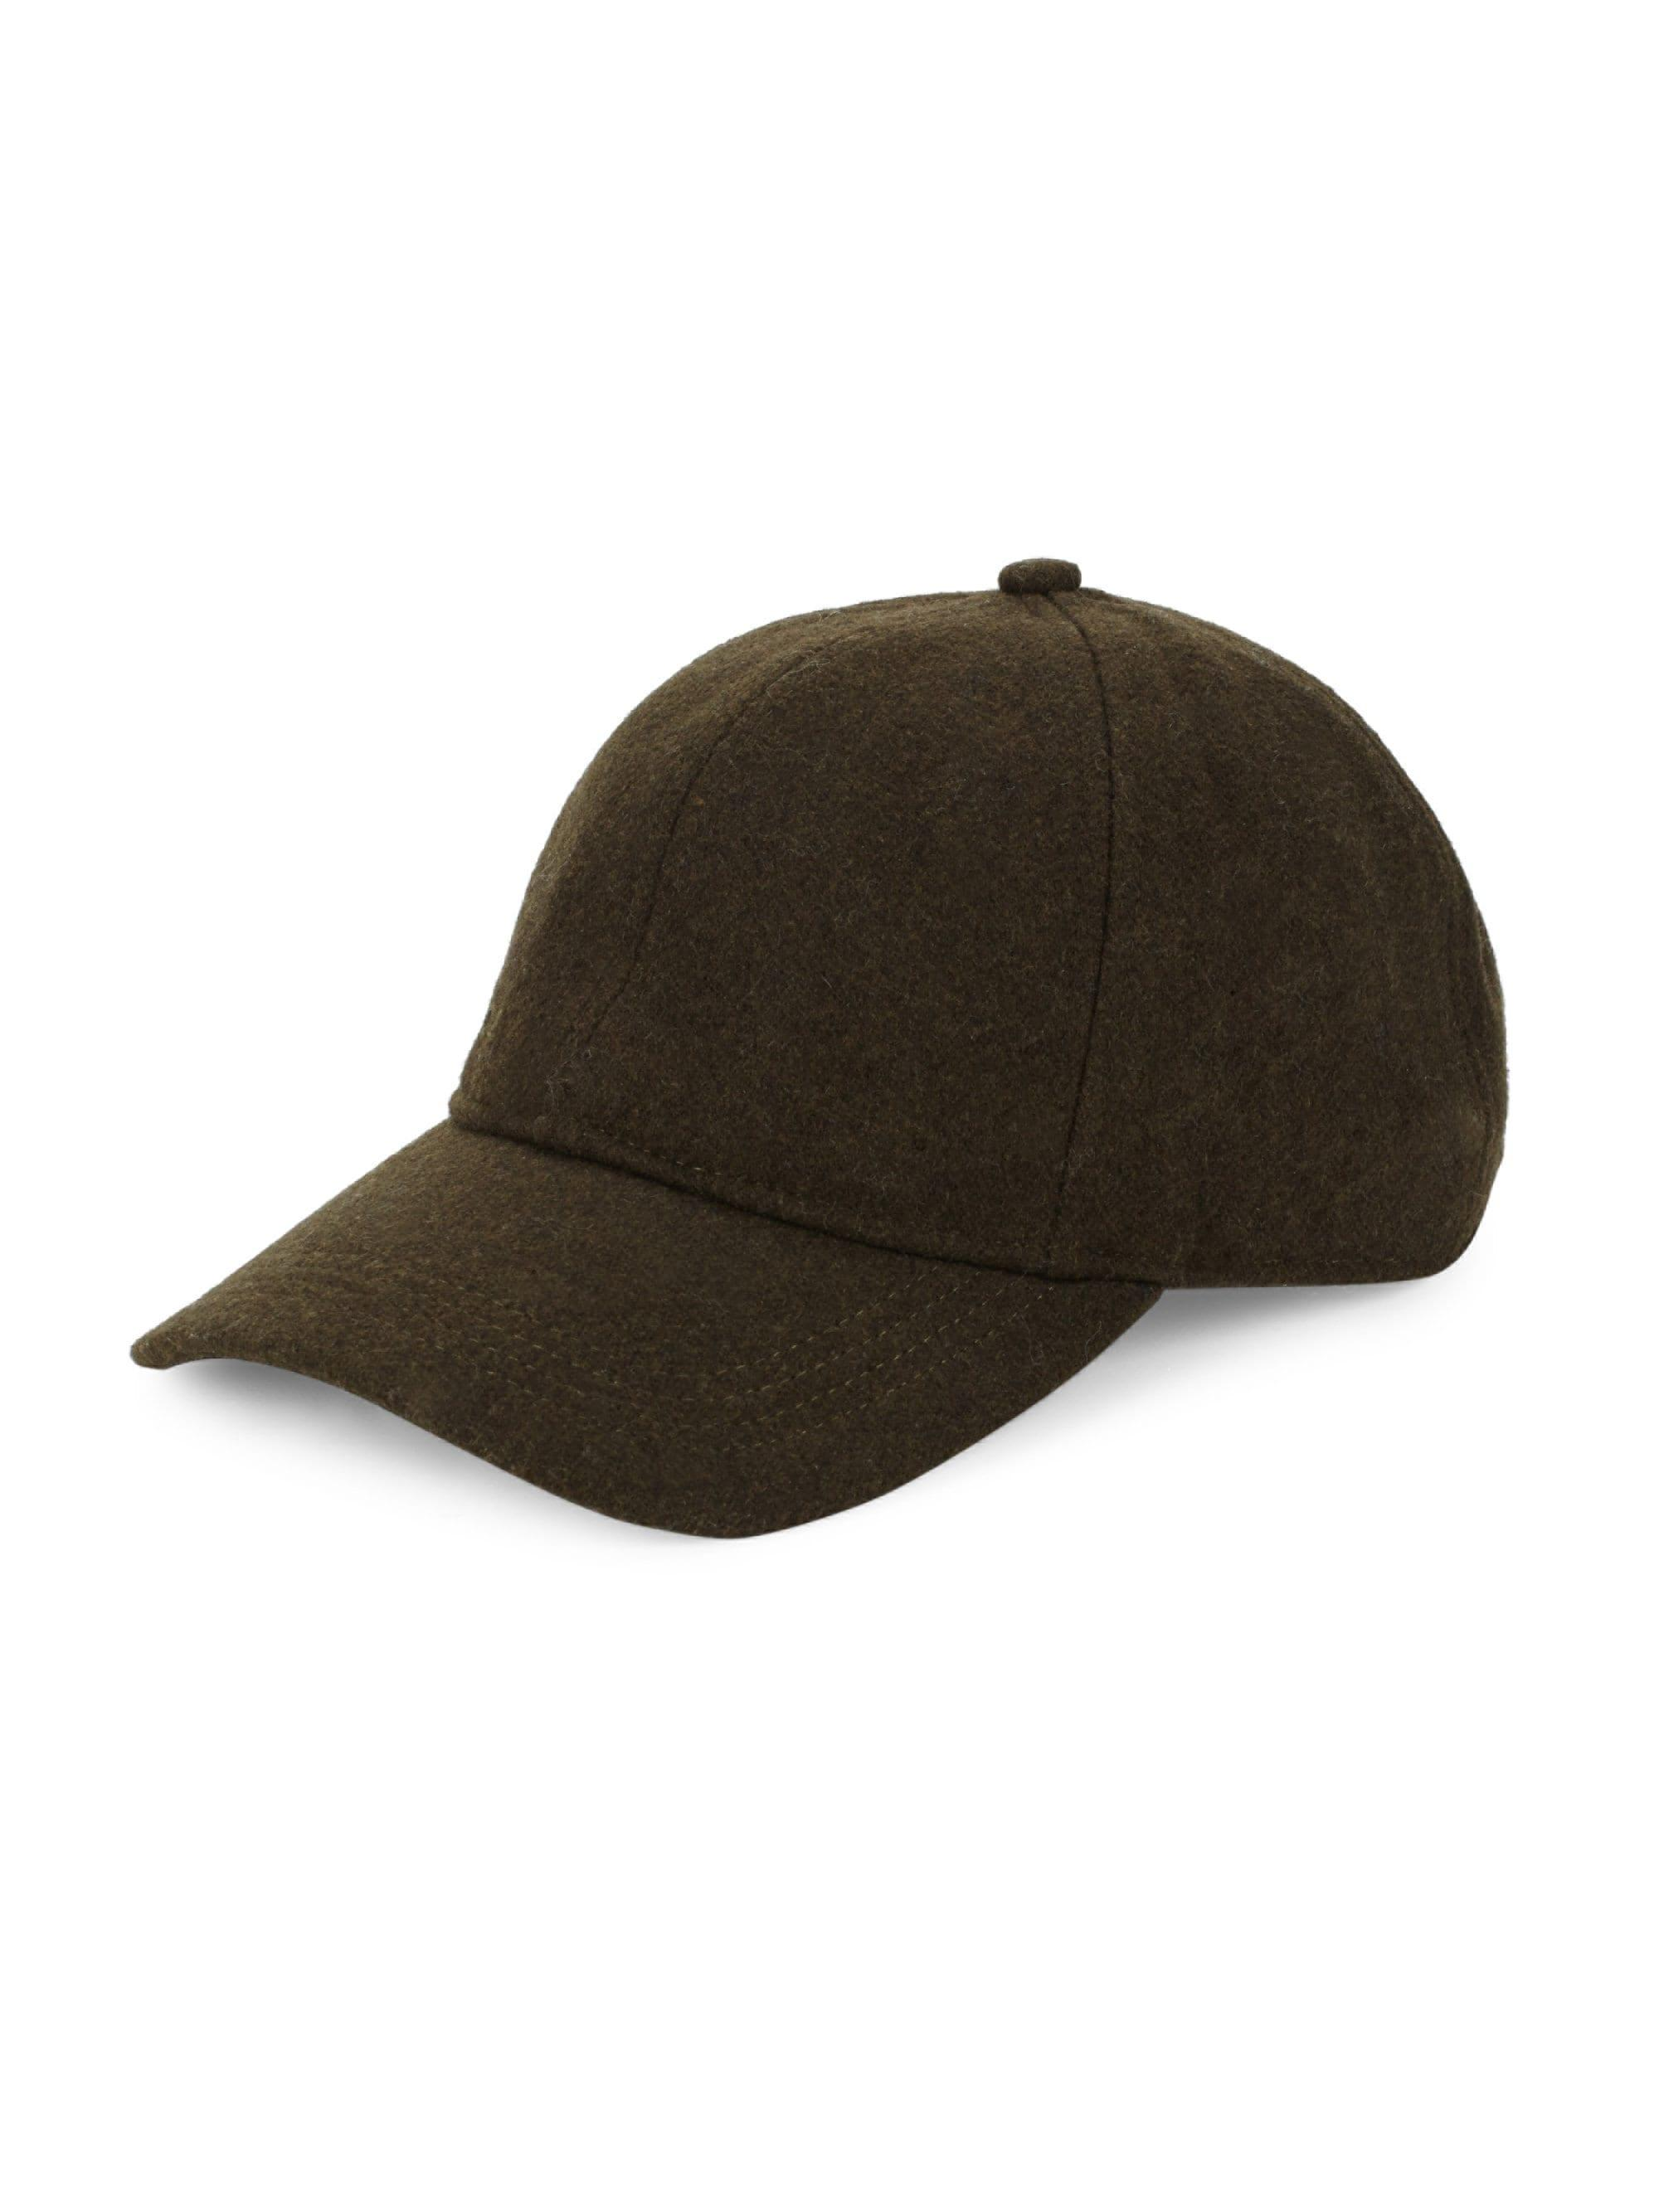 801471c5a011ac Lyst - Barbour Waxed Cotton Baseball Cap - in Green for Men - Save 71%